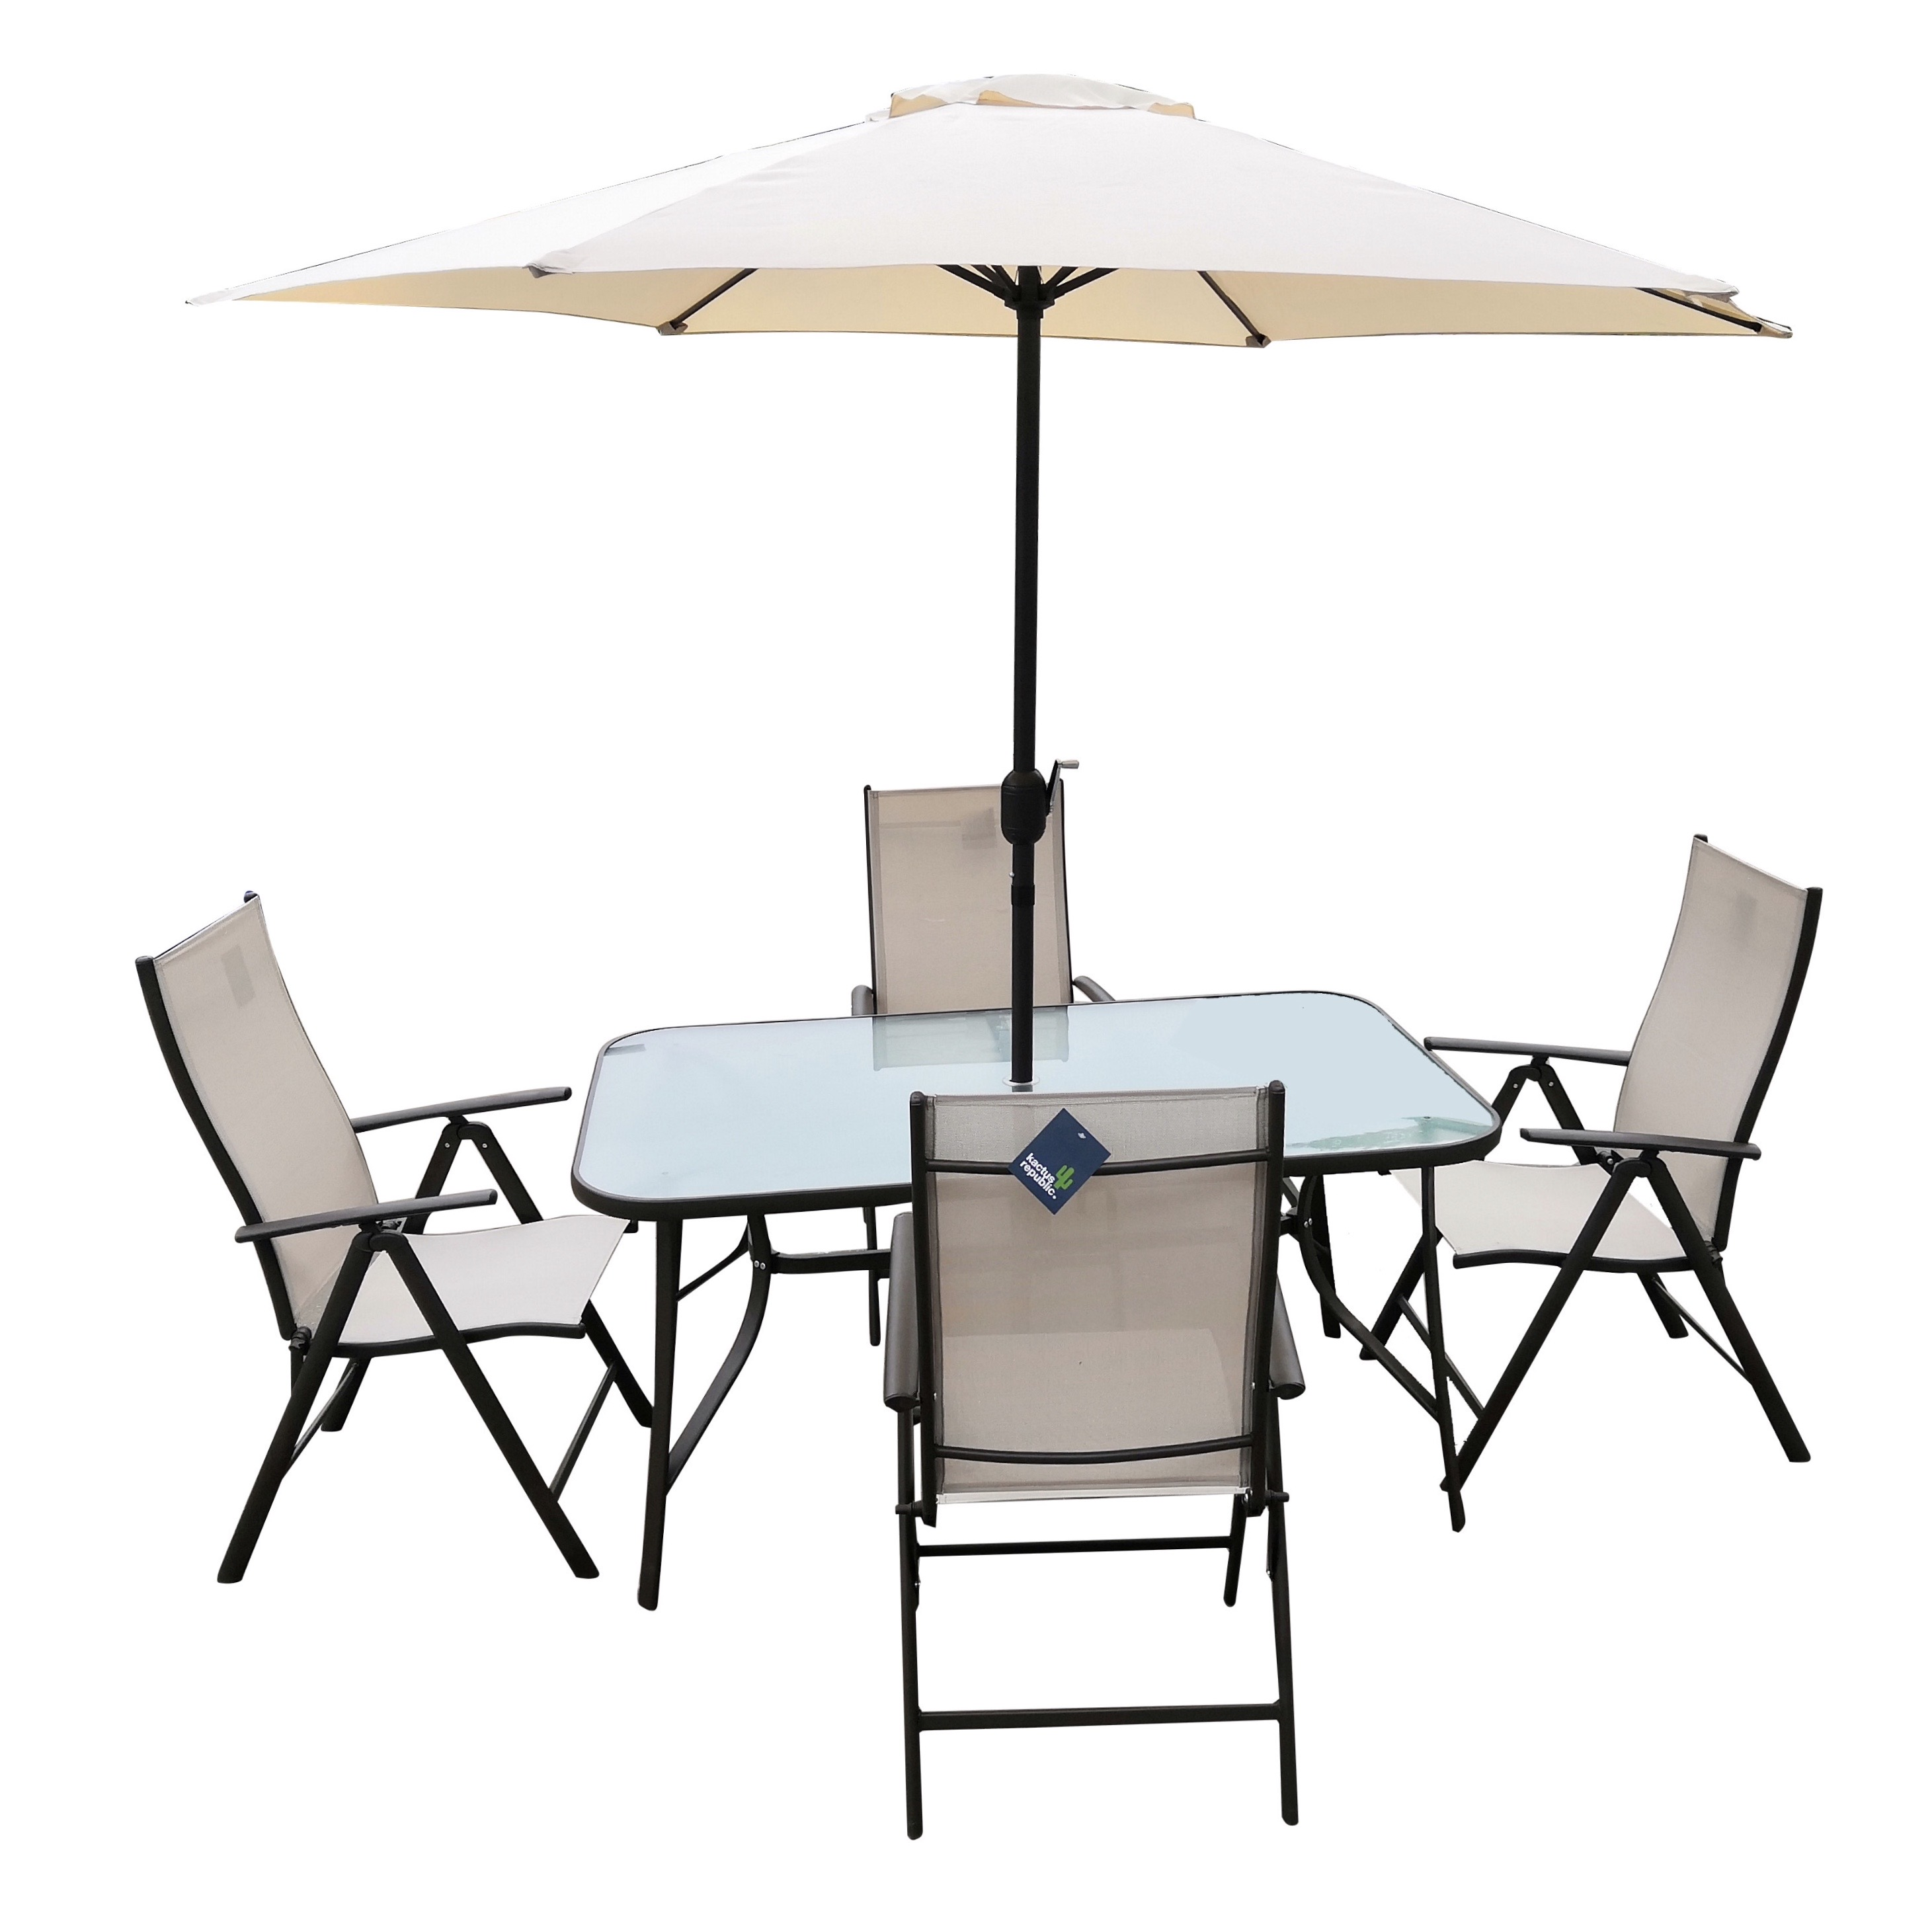 Dining Table Set Outdoor B M Treasures Outdoor Ambia Garden Furniture Buy Ambia Garden Furniture Garden Treasures Outdoor Furniture B M Garden Furniture Product On Alibaba Com